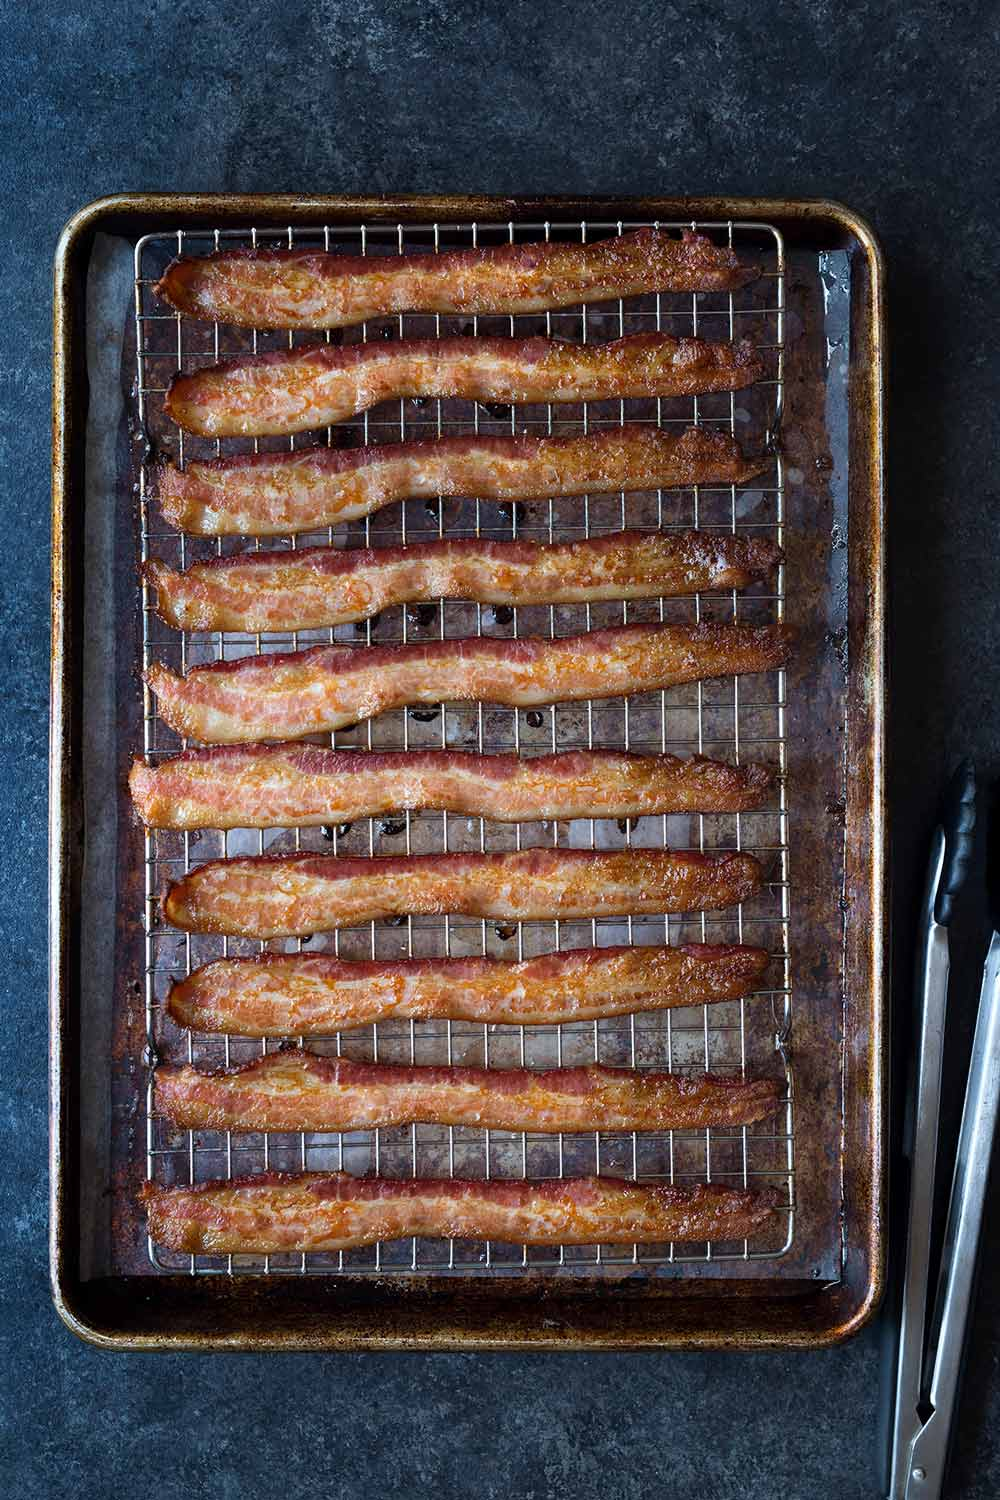 Oven-baked bacon on a sheet pan and wire rack. Photo shows overhead shot of finished bacon on the sheet pan and tongs on a blue backdrop.